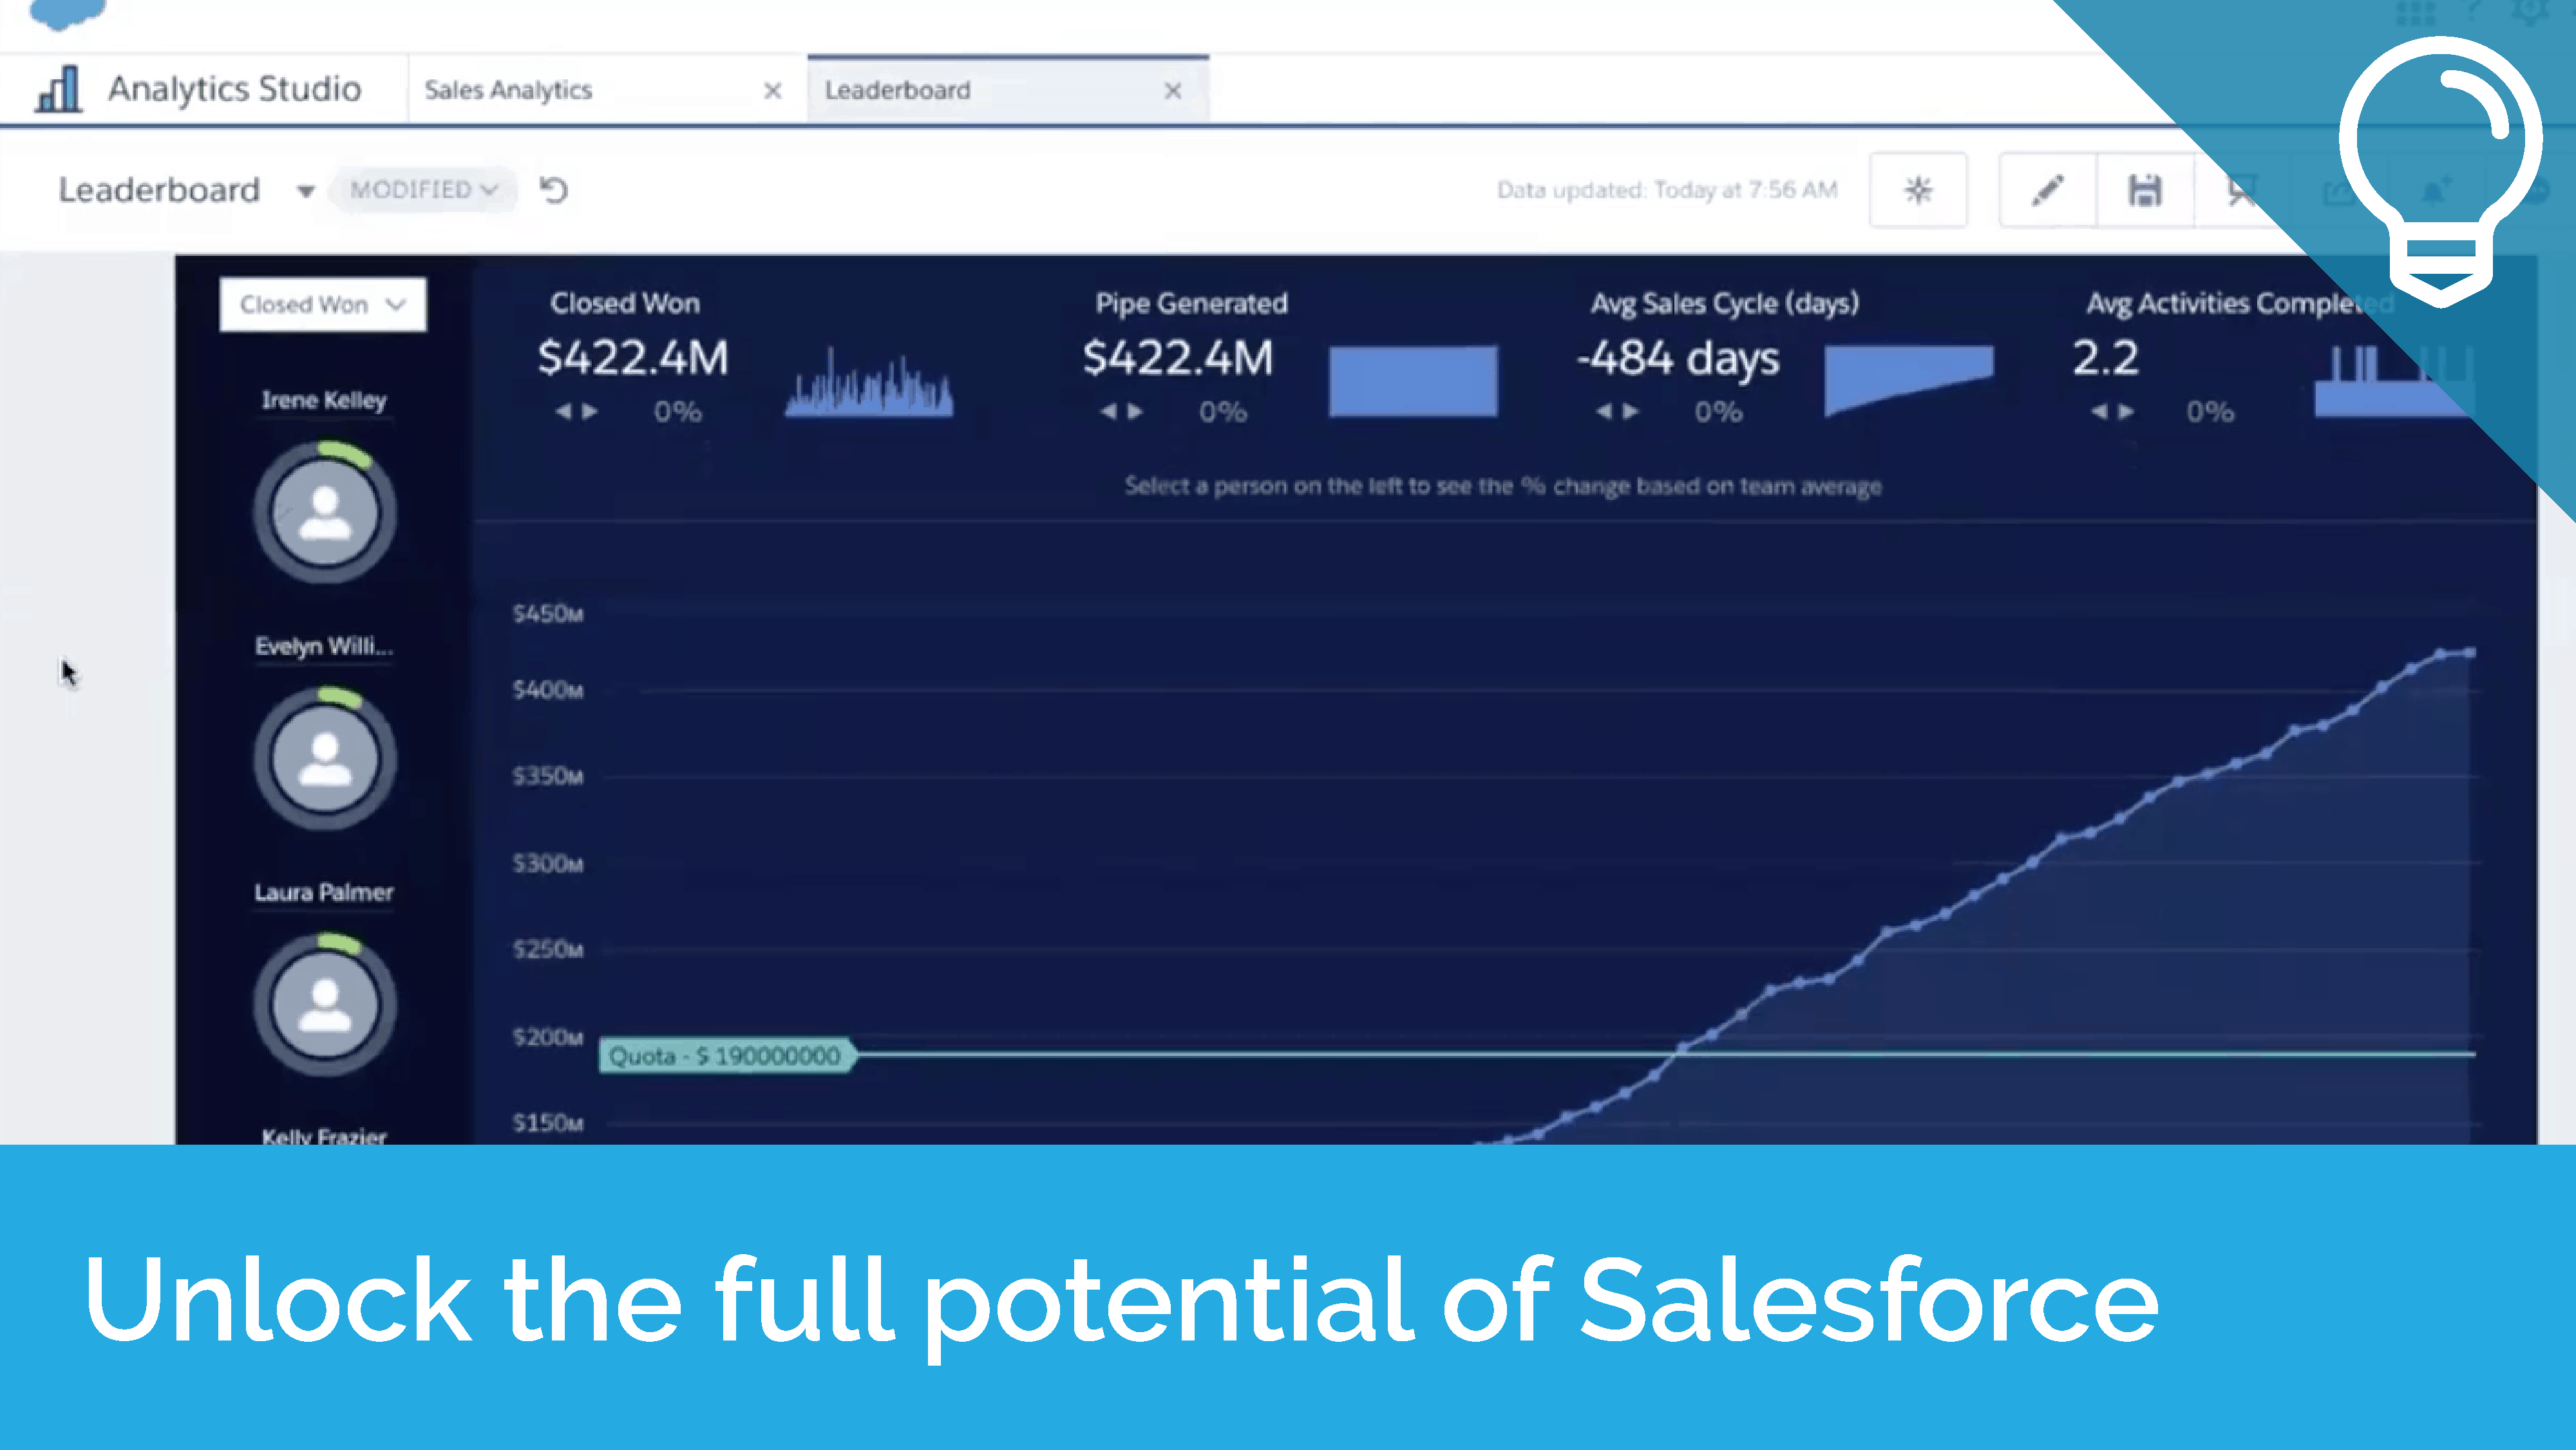 Unlock the Full Potential of Salesforce